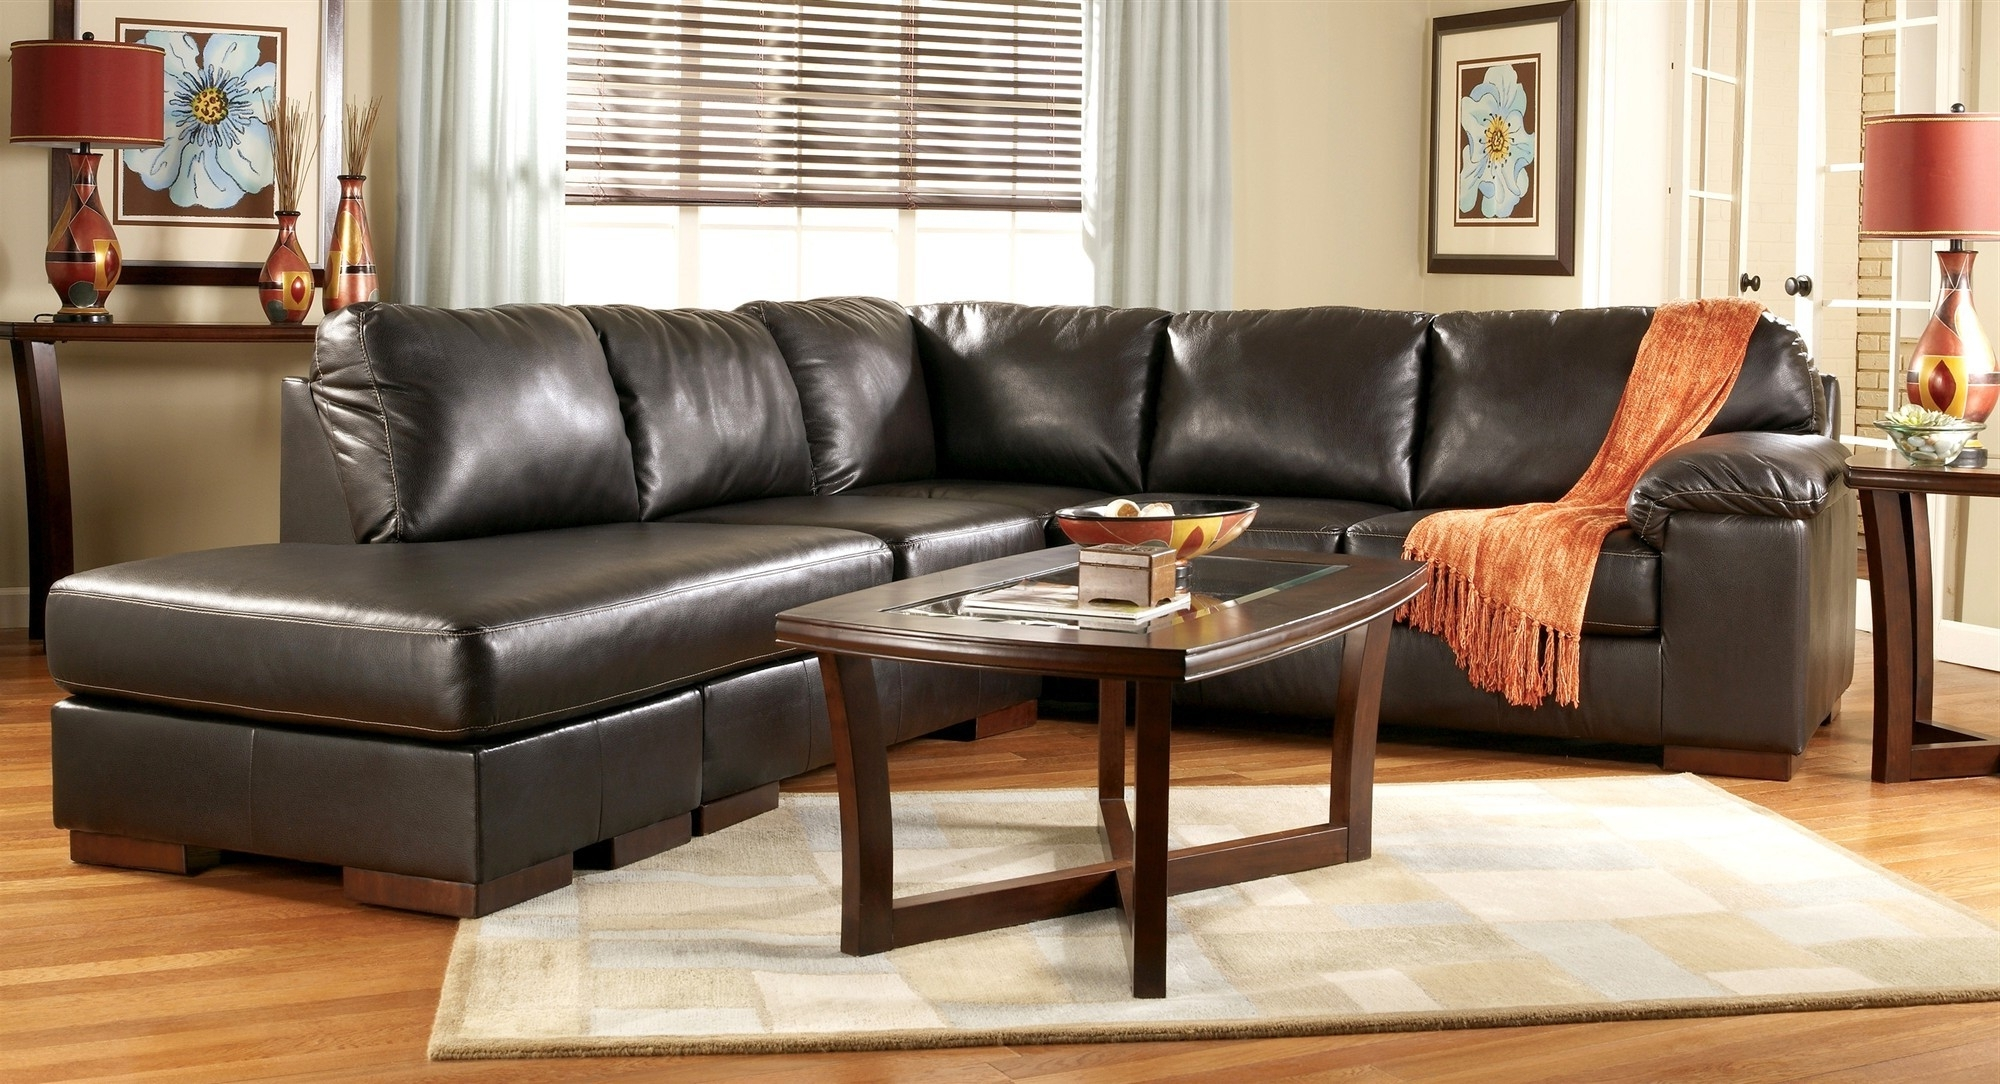 Clearance Sectional Sofas Within Widely Used Small Sectional Couch Ethan Allen Sofas Clearance Big Lots (View 16 of 20)